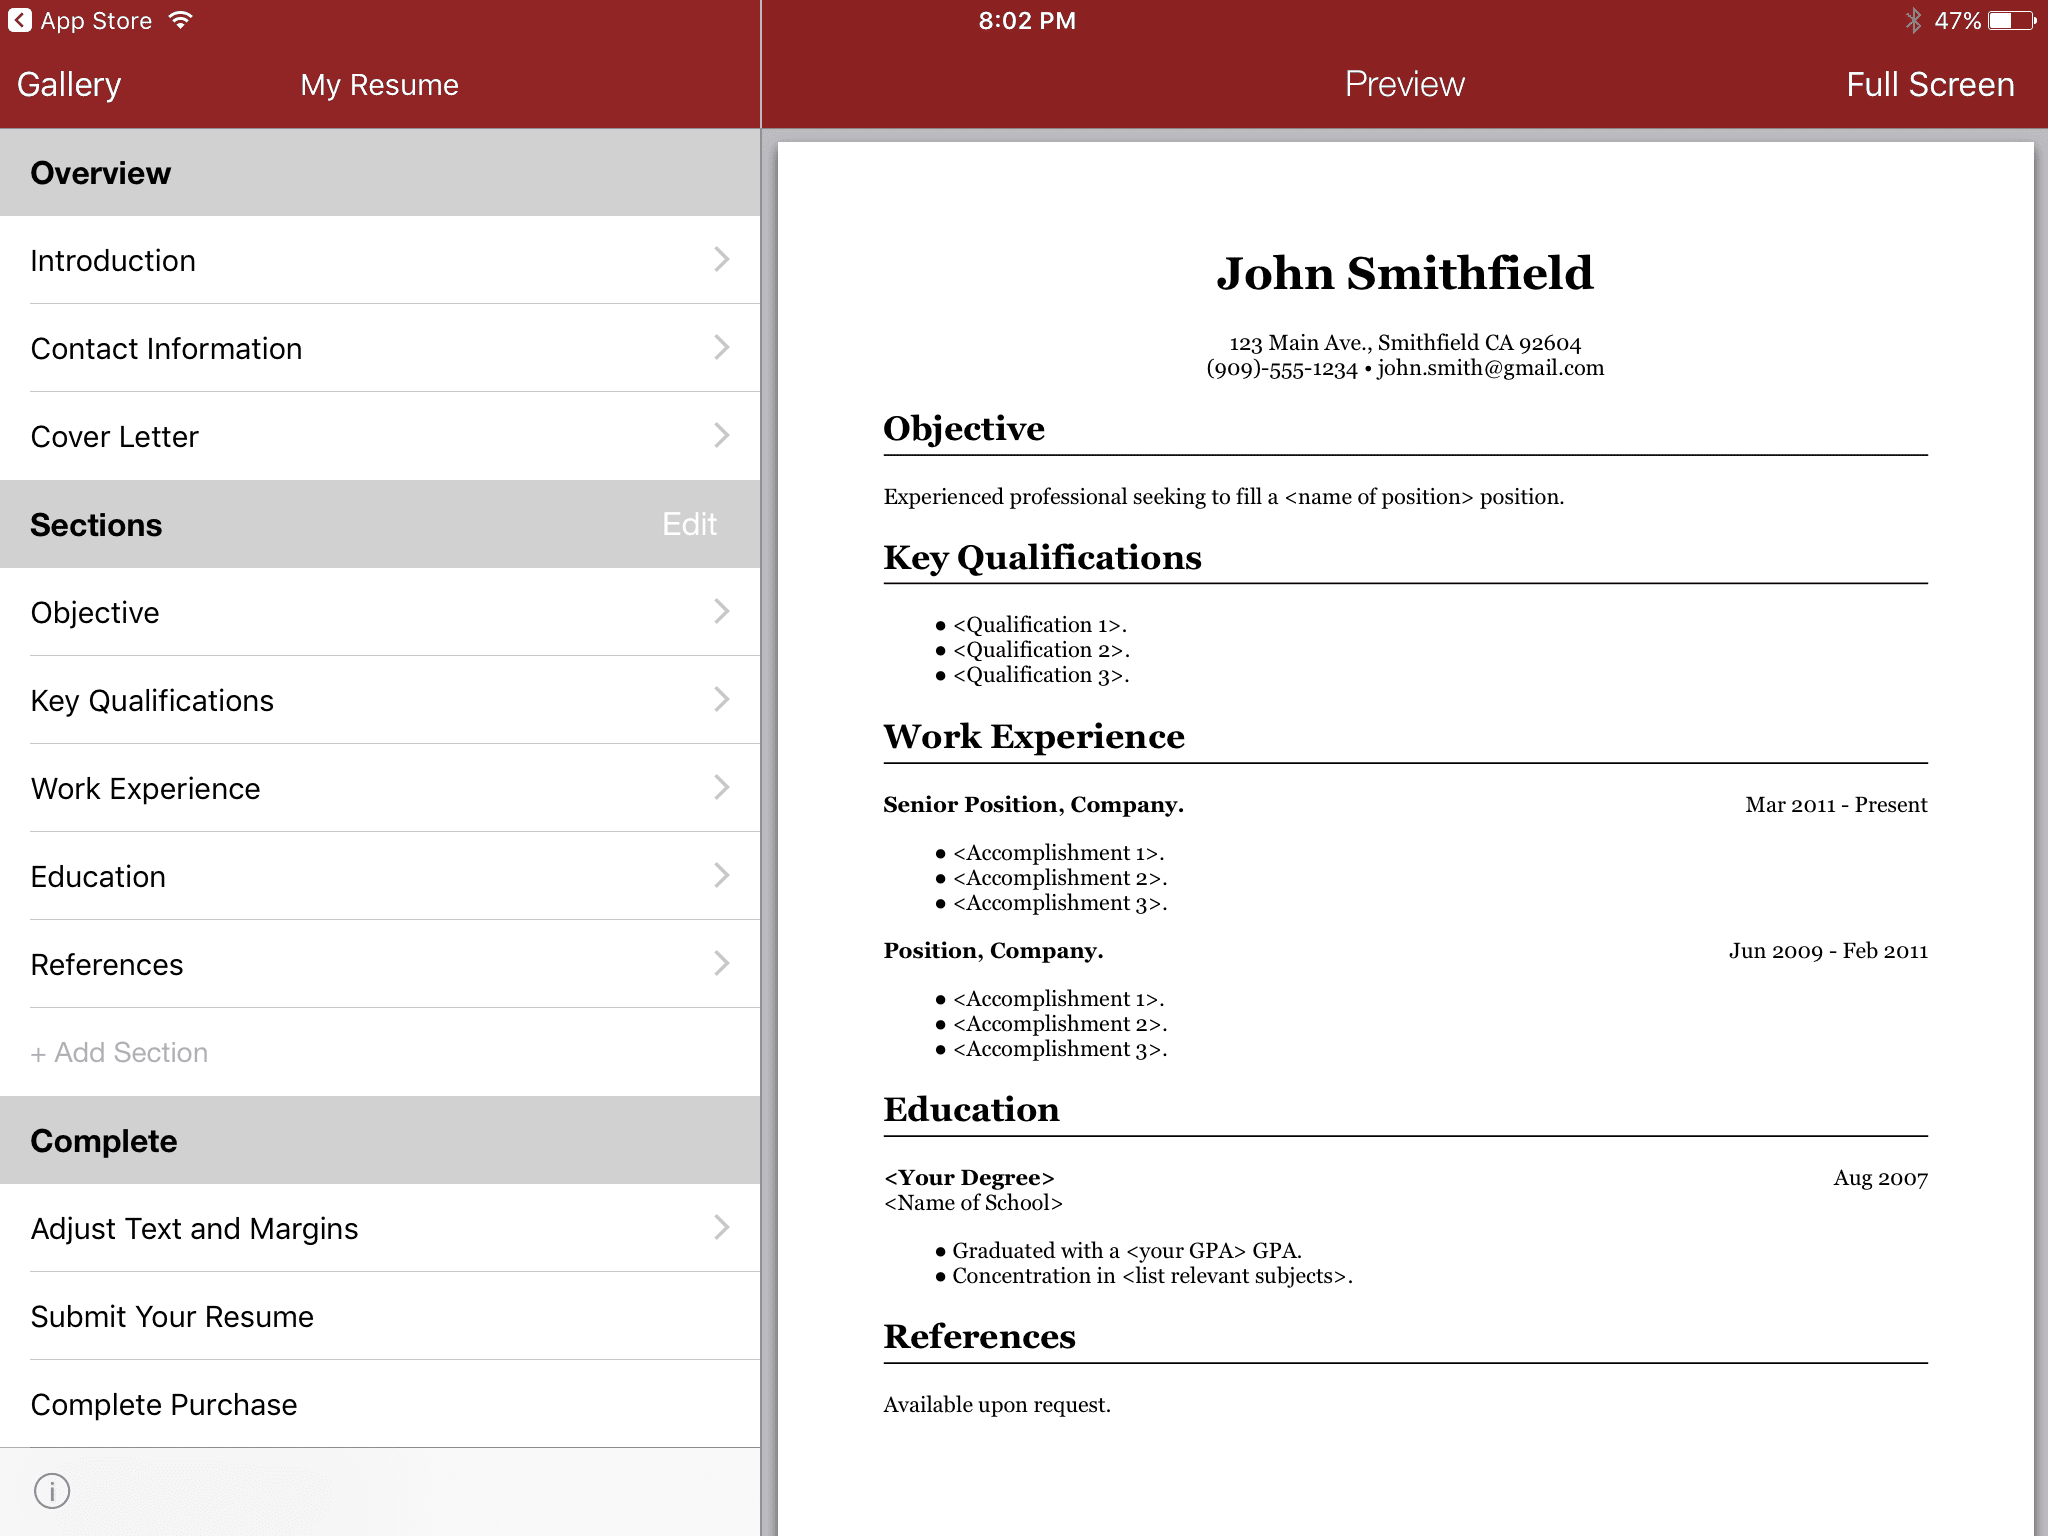 8 Cheap Or Free Resume Builder Apps